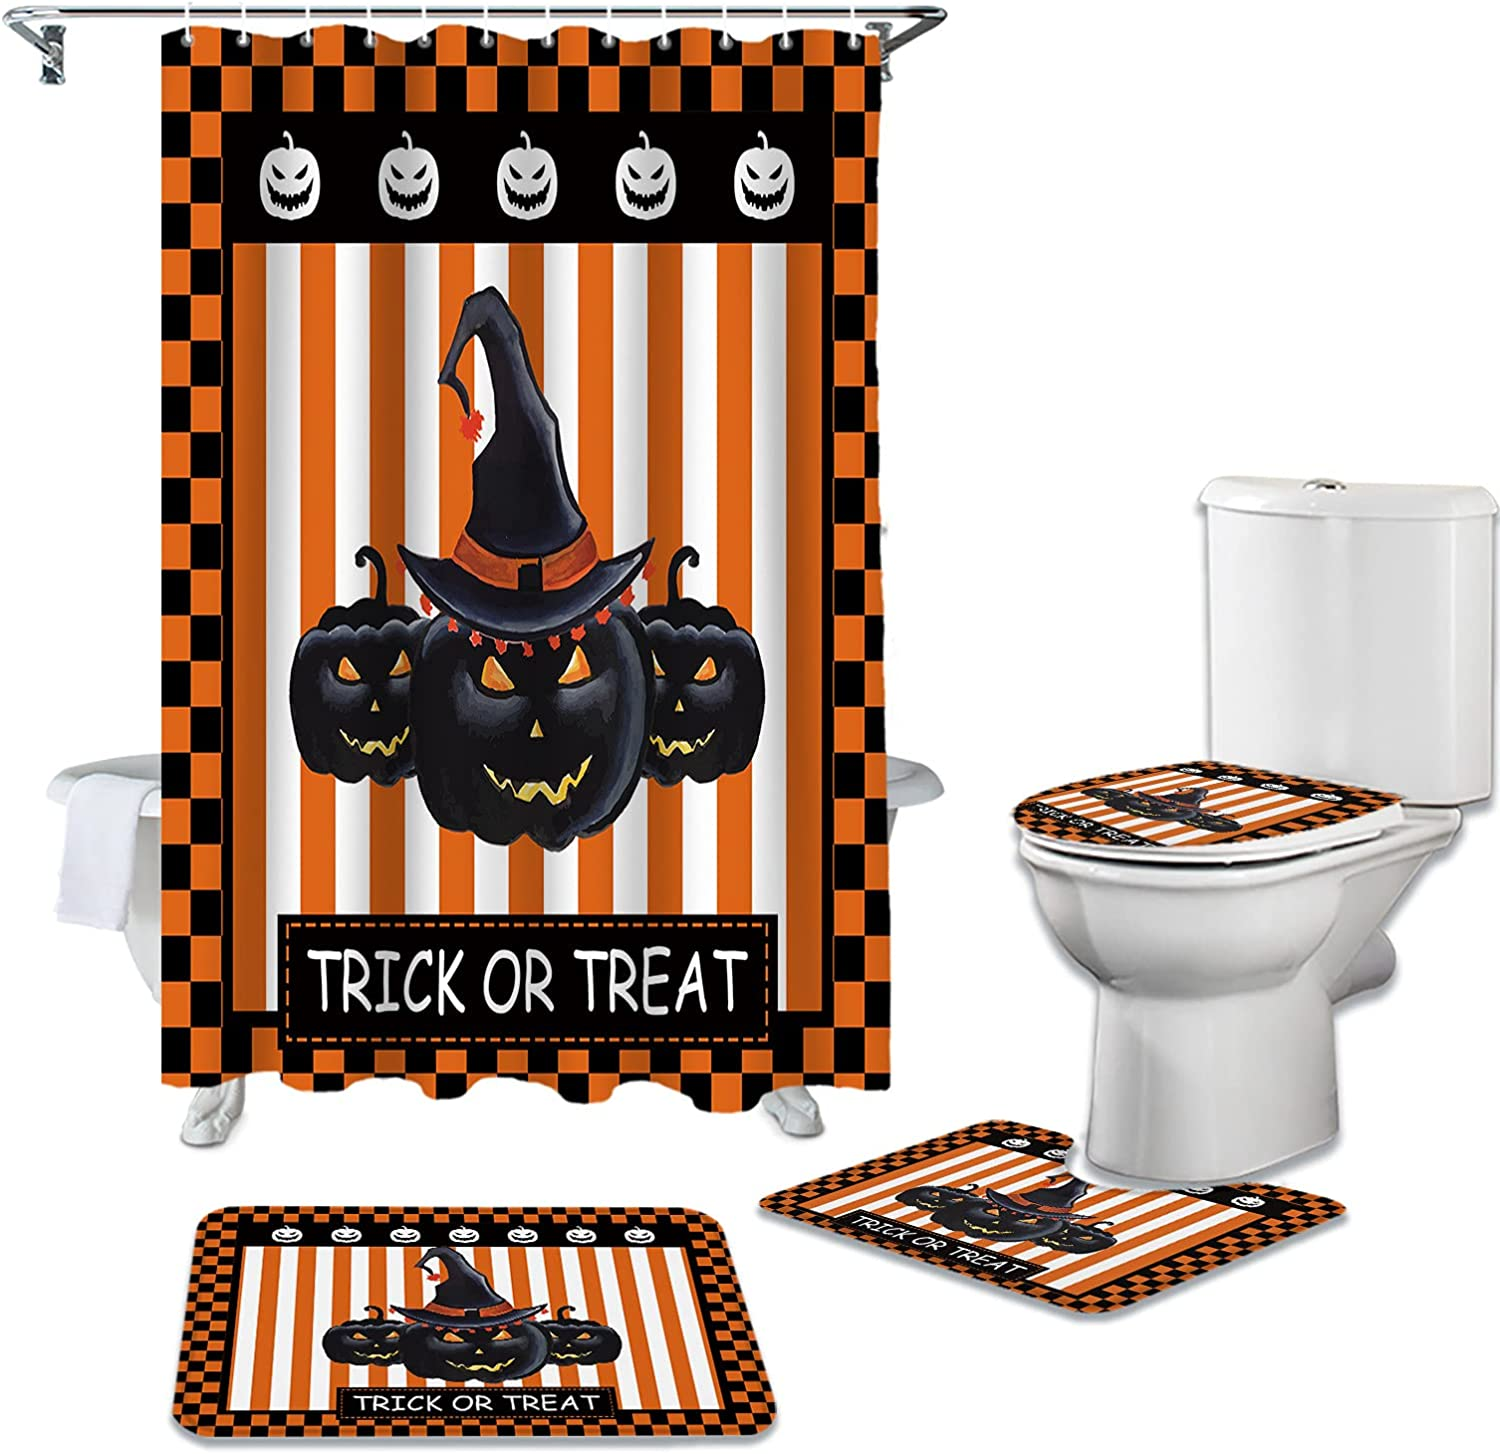 Shower Curtain Dealing full price reduction Sets 4 Pieces Scary with Max 44% OFF Rugs Non-Slip Halloween